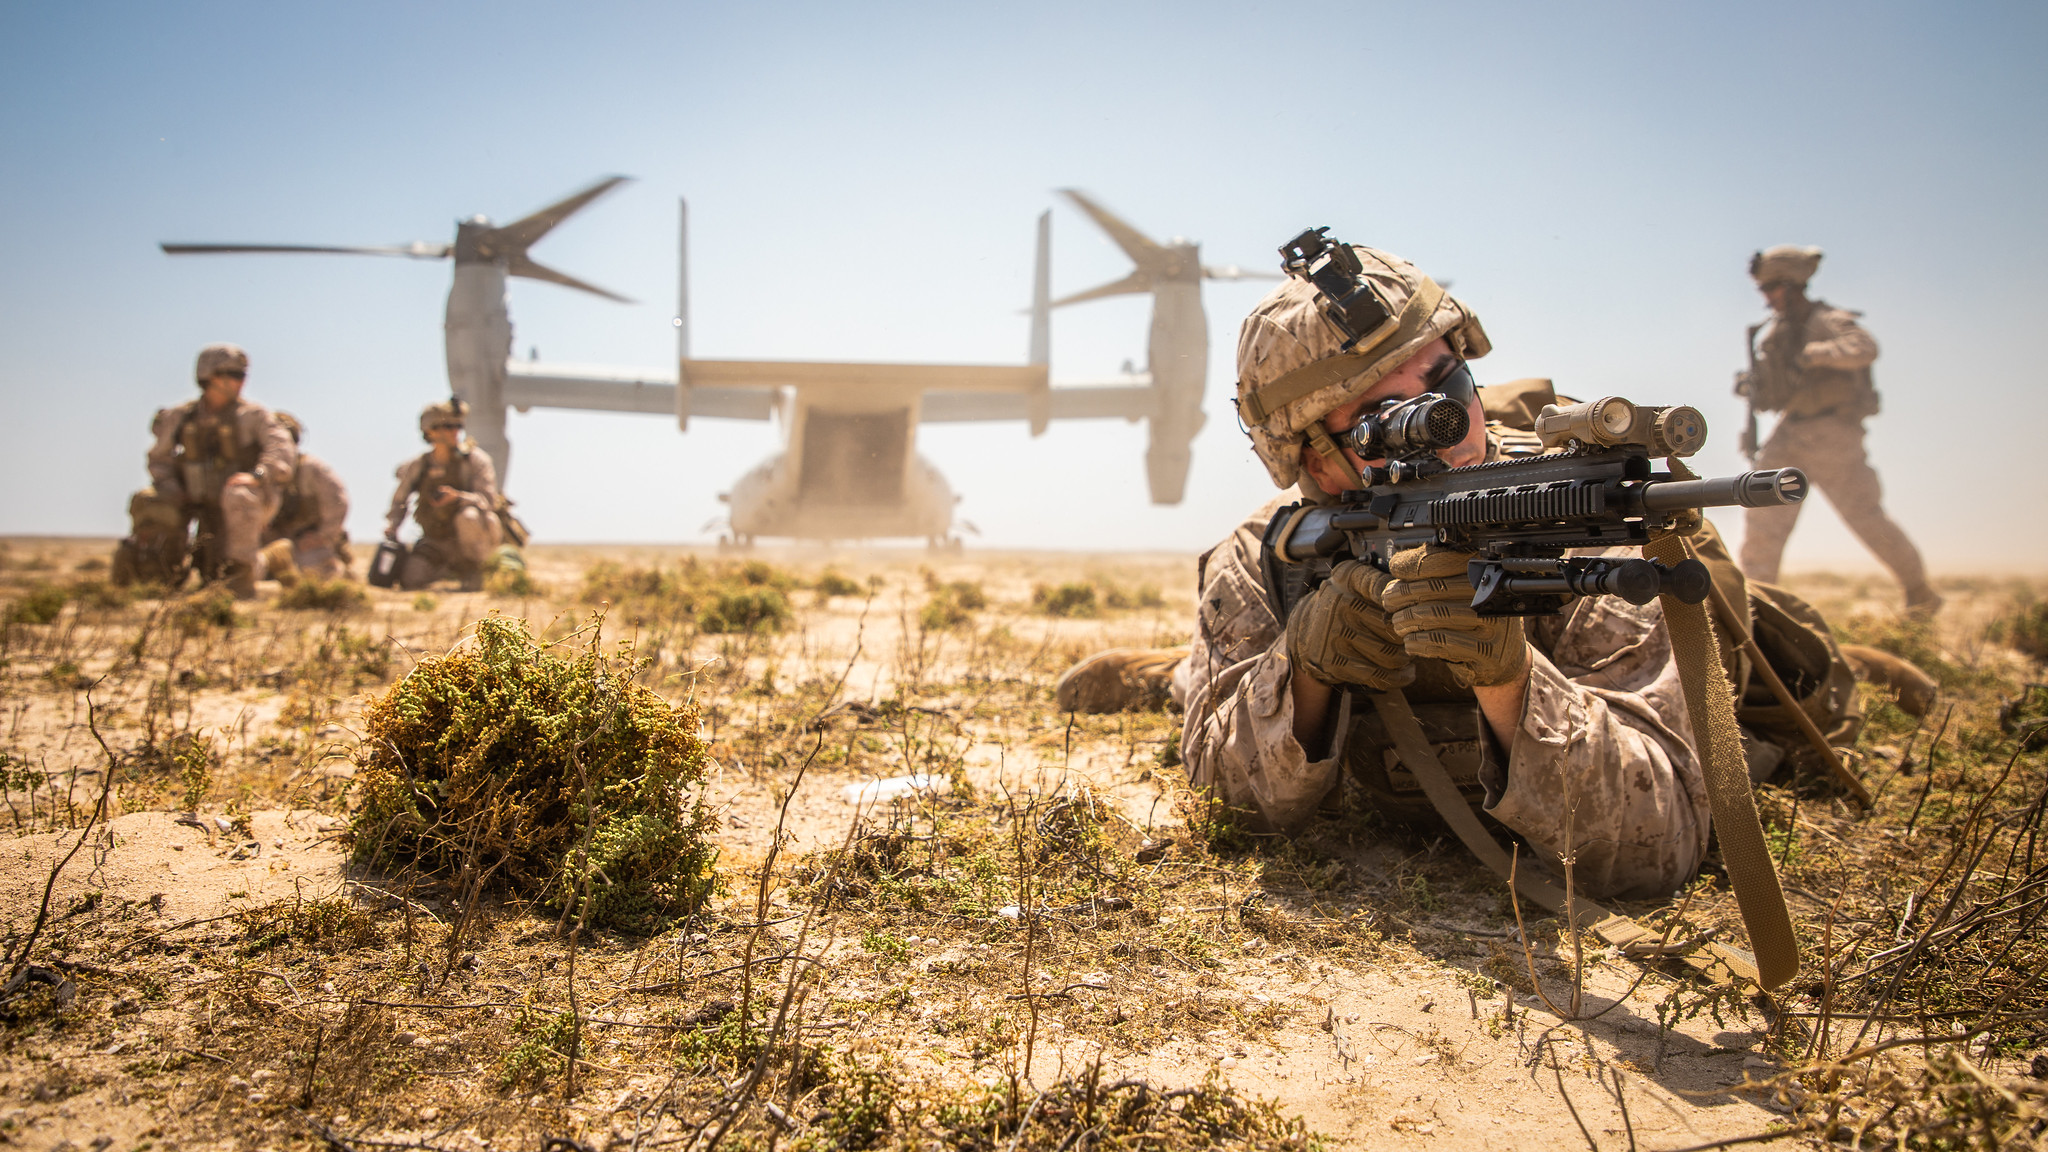 A Marine assigned to the Special Purpose Marine Air-Ground Task Force-Crisis Response-Central Command (SPMAGTF-CR-CC) 19.2, posts security during a tactical recovery of aircraft and personnel (TRAP) exercise on Karan Island, Kingdom of Saudi Arabia, April 23, 2020. (Sgt. Kyle C. Talbot/Marine Corps)